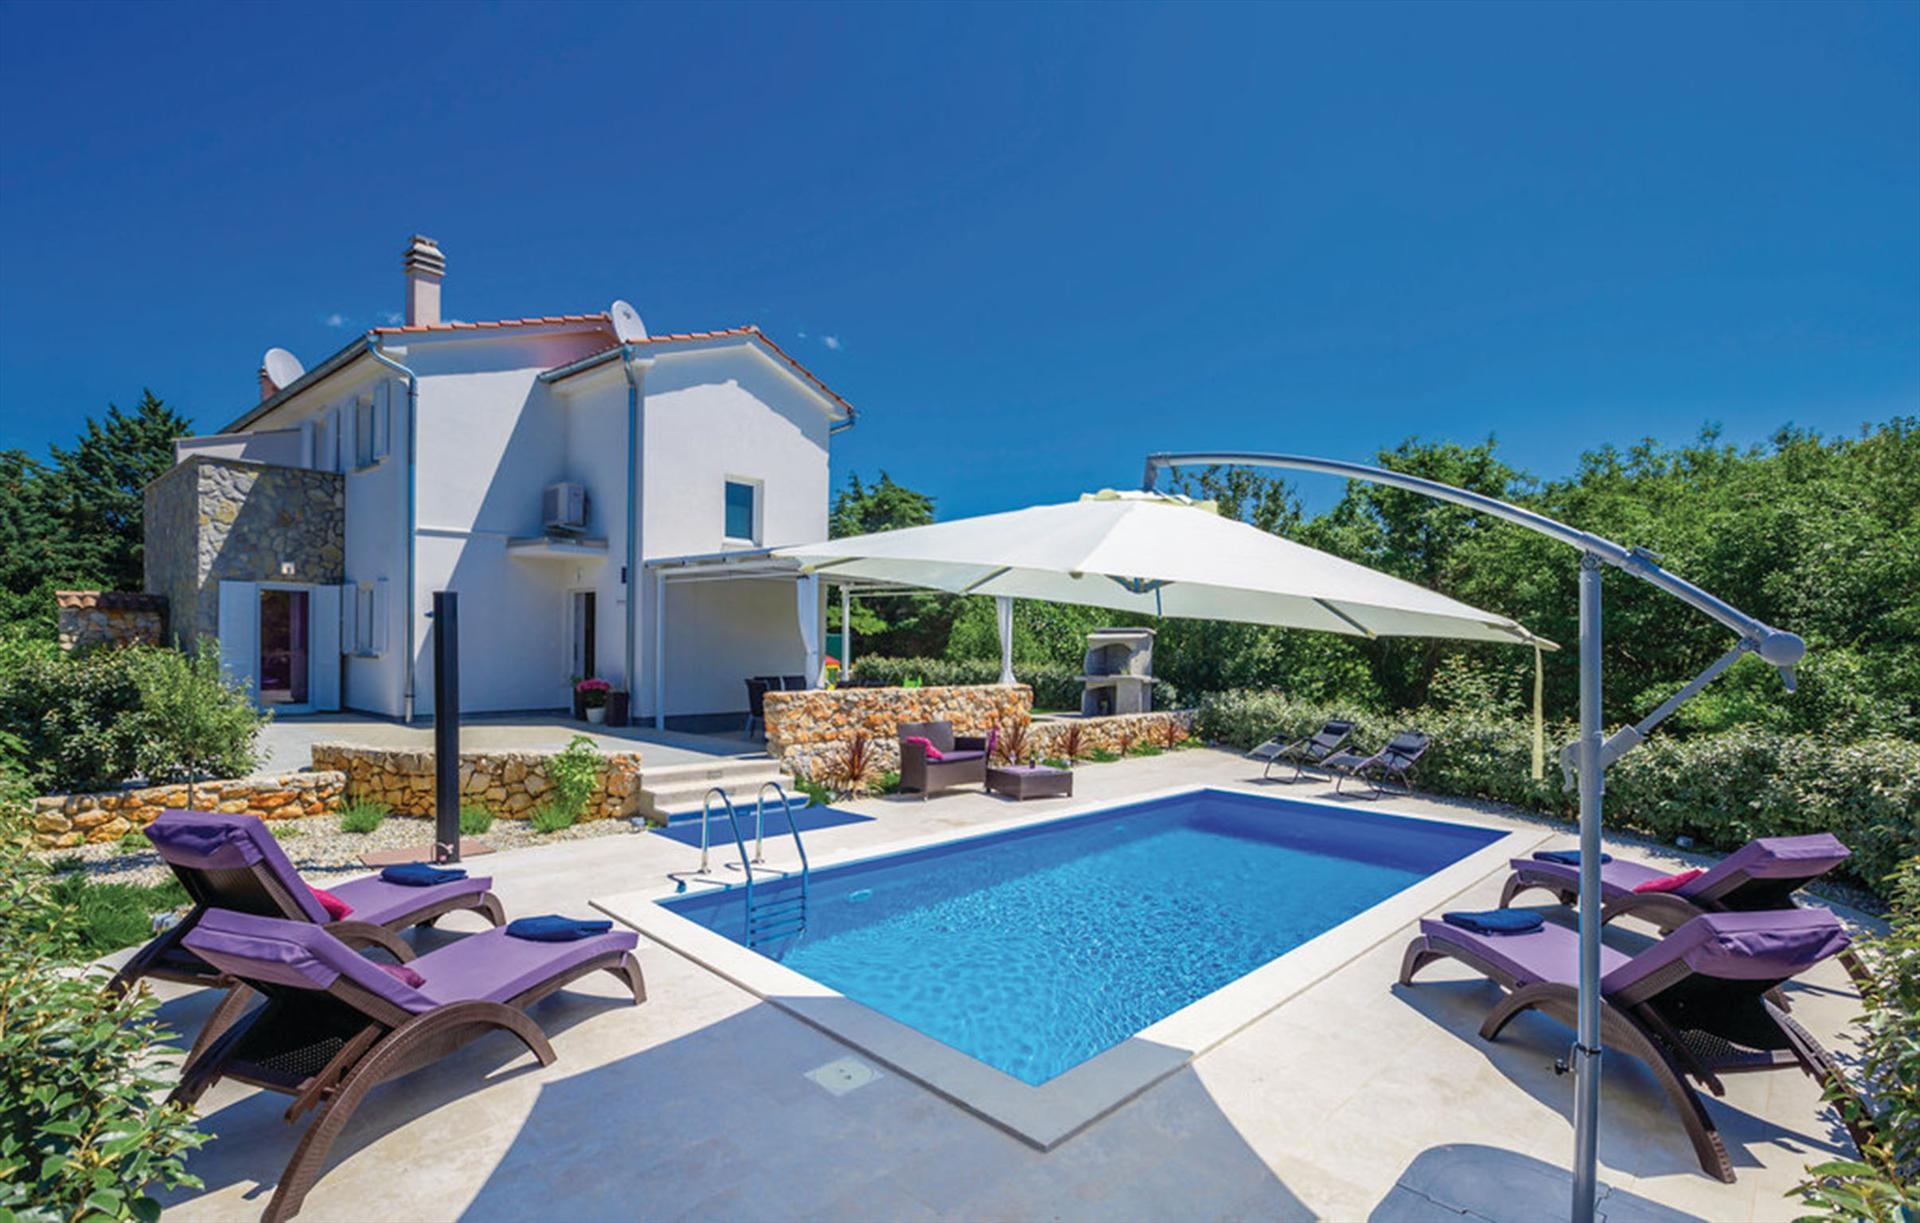 10801 Familien ferienhaus mit Pool, Beautiful and comfortable holiday home  with private pool in Kras, Island Krk, Croatia for 5 persons...